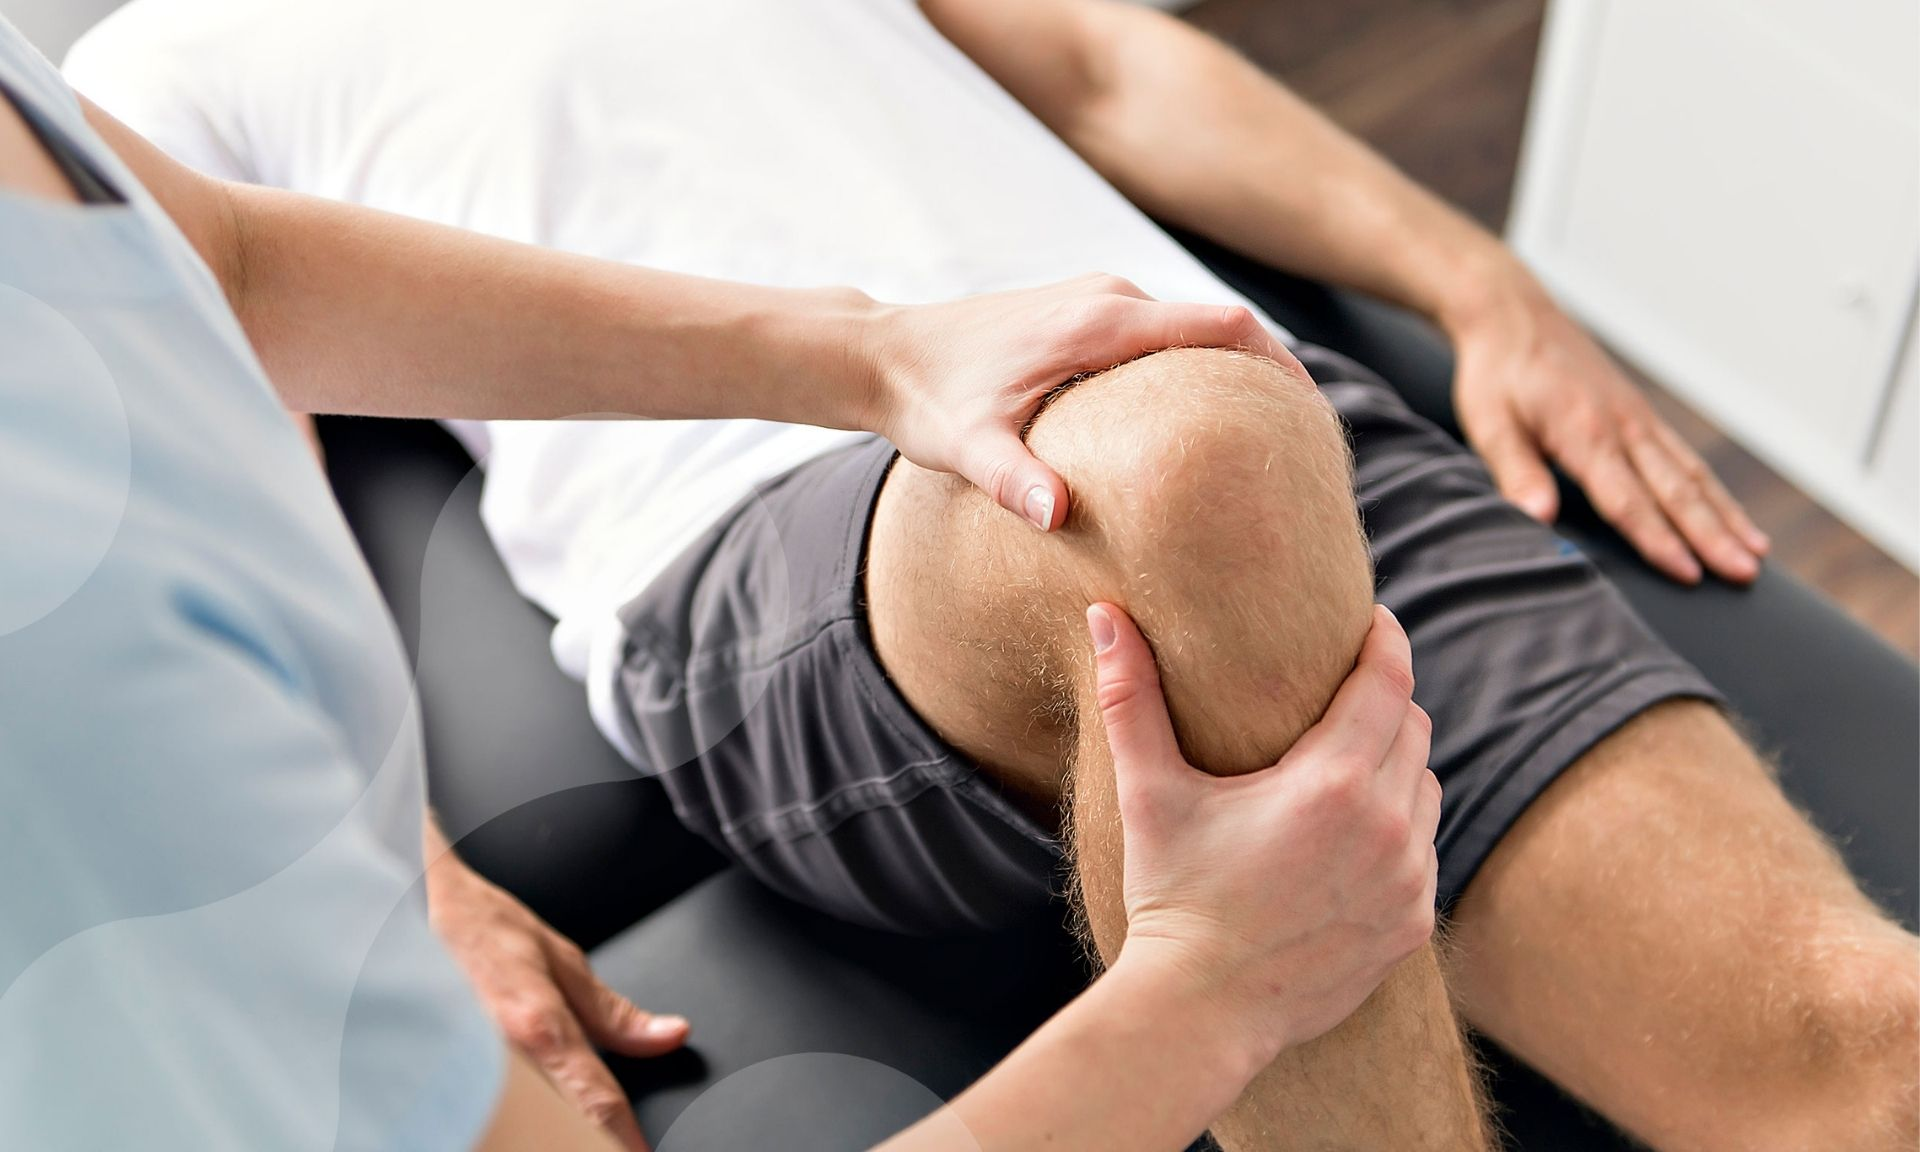 cbd oil for pain article top image visualizes physiotherapy session